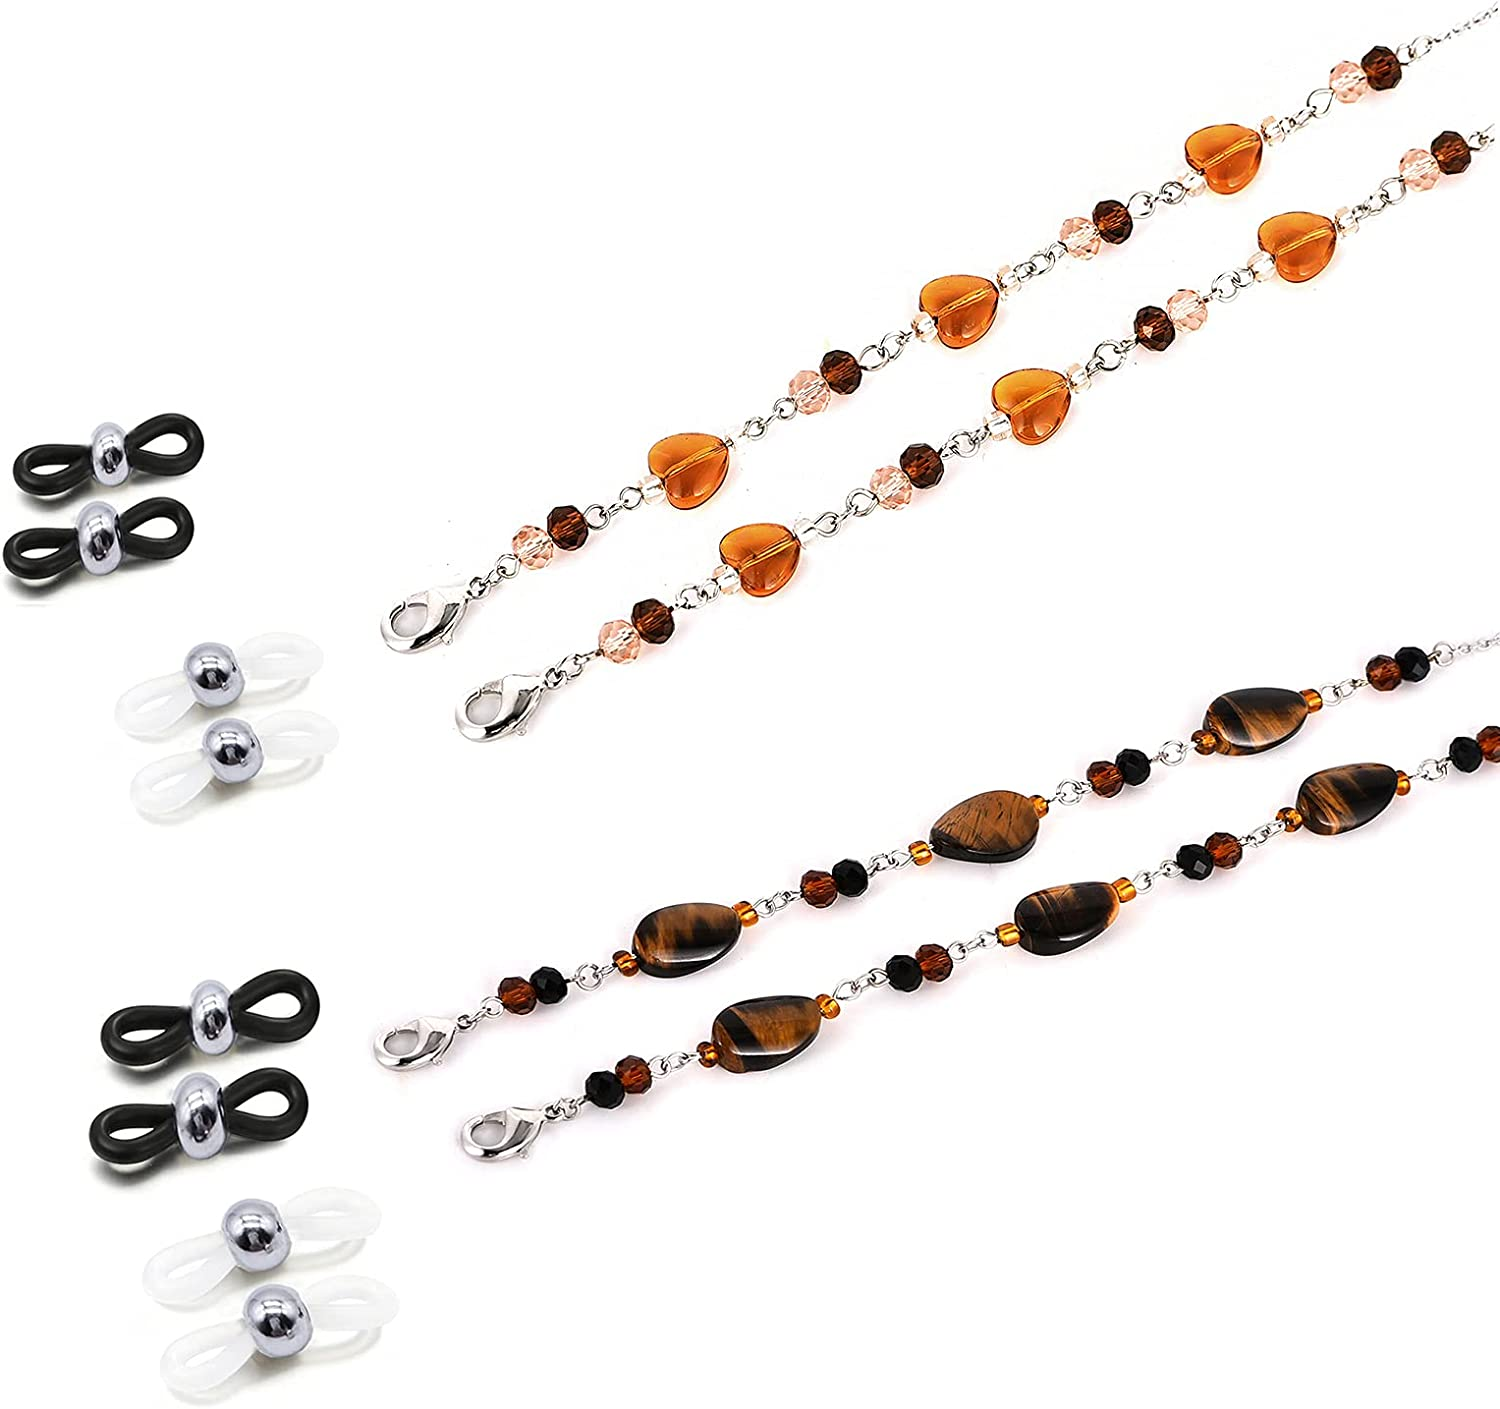 Mask Chain Necklace Handmade Beaded Reading Eyeglass Chains Hold